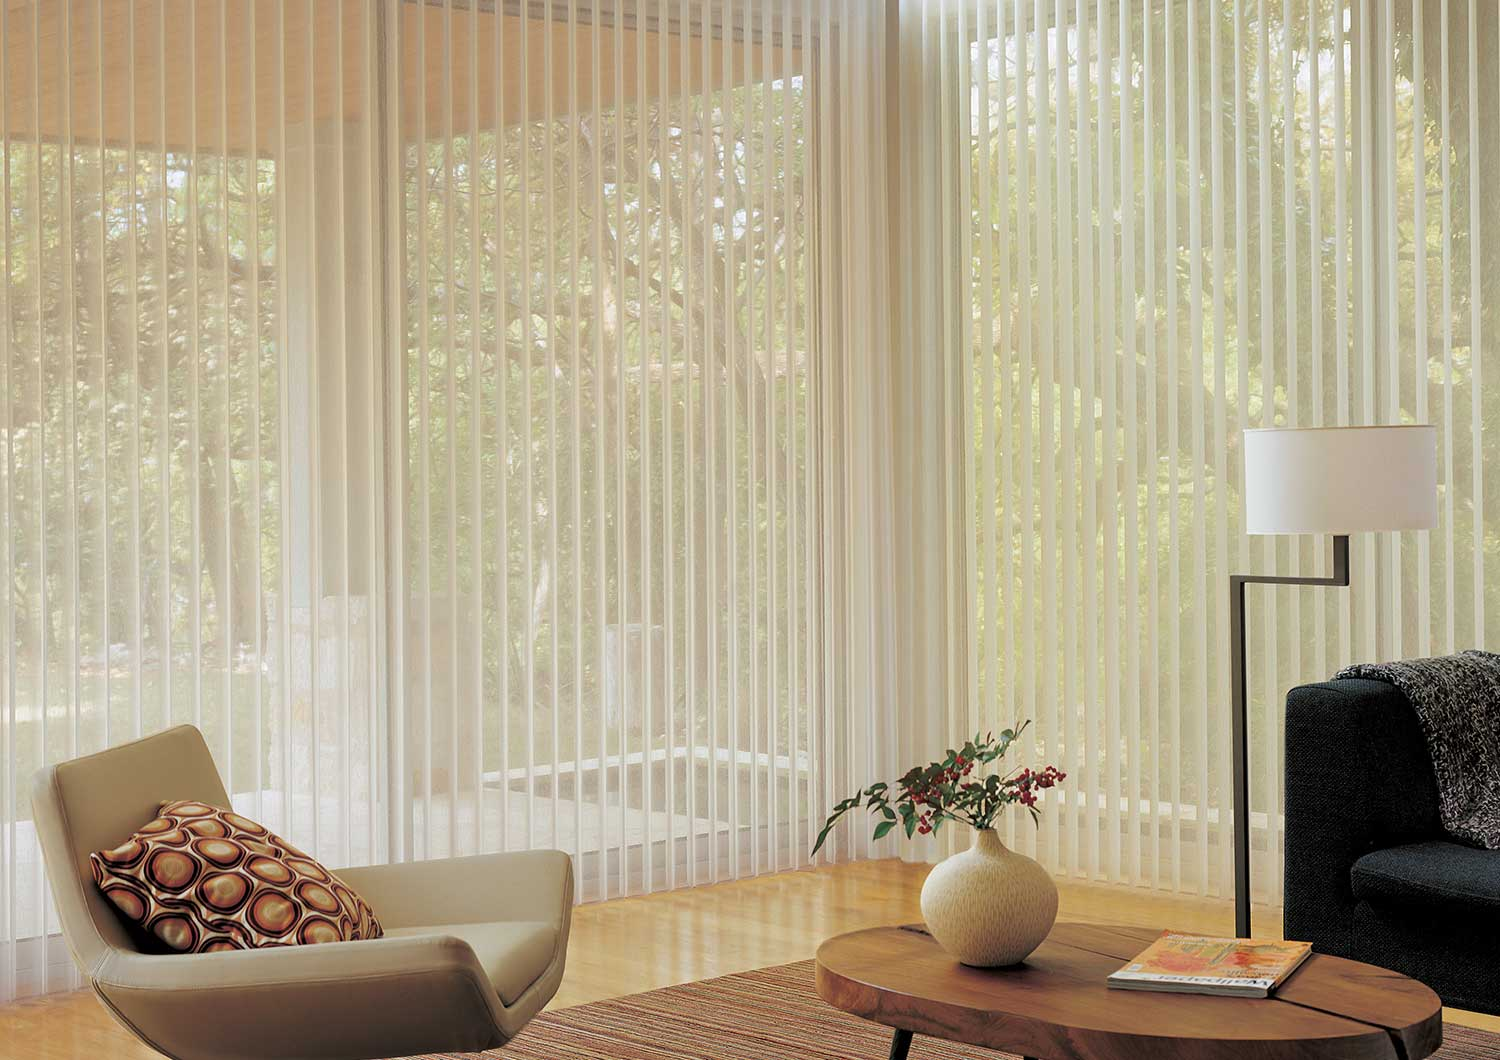 Luminette allows for light control with privacy sheers.